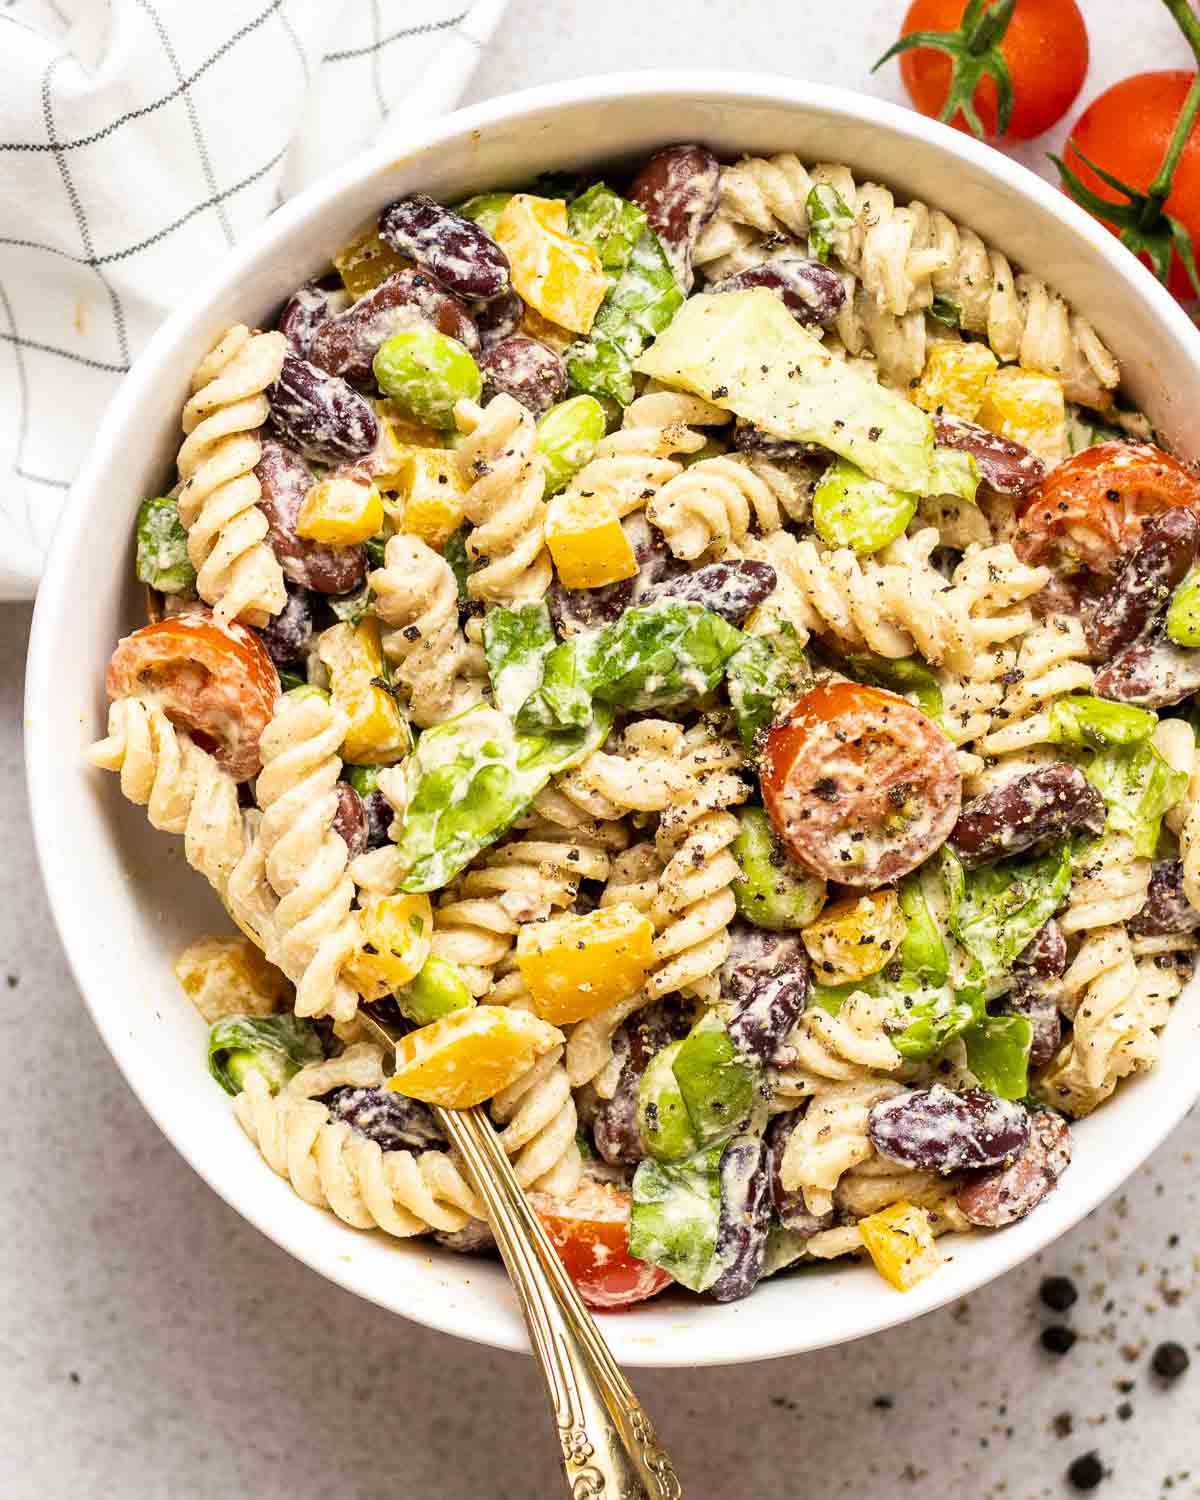 Pasta salad in a white bowl topped with black pepper with a fork.